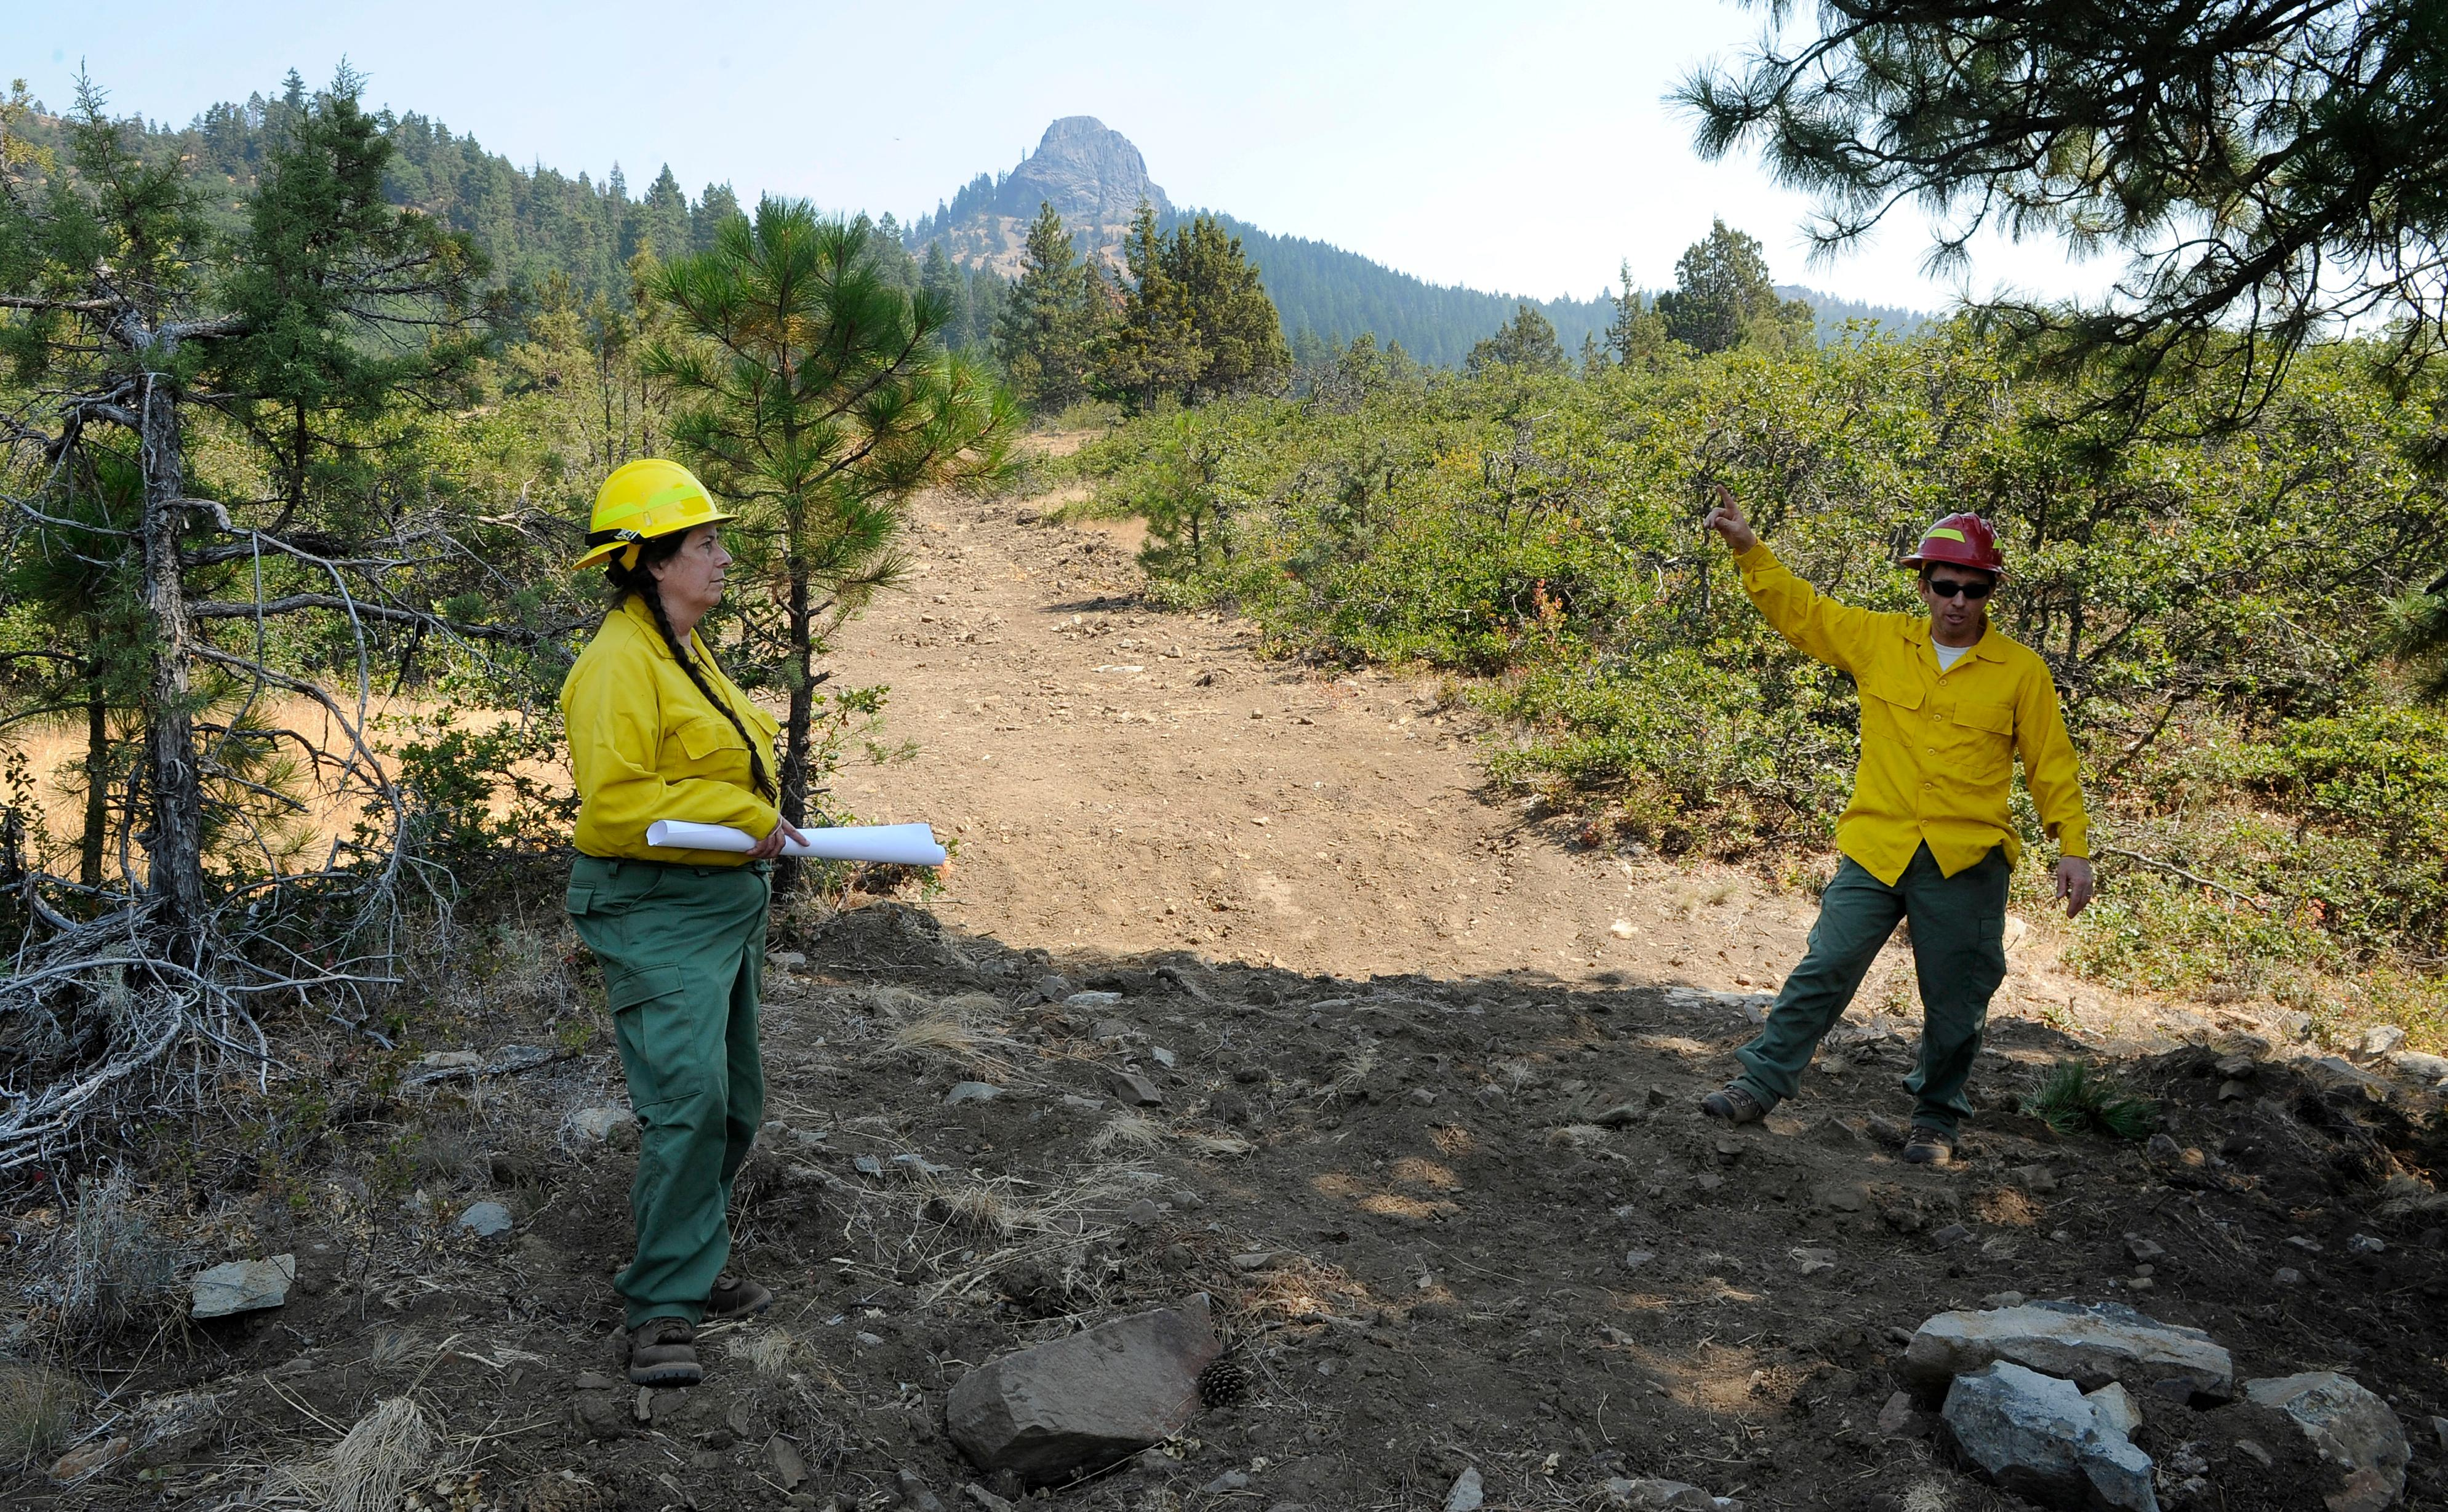 Andy Atkinson / Mail TribuneBLM hydrologist Tim Montfort talks with Mastrofini about the need for proper rehabilitation in the Soda Mountain Wilderness after the dozer work during the Klamathon fire.